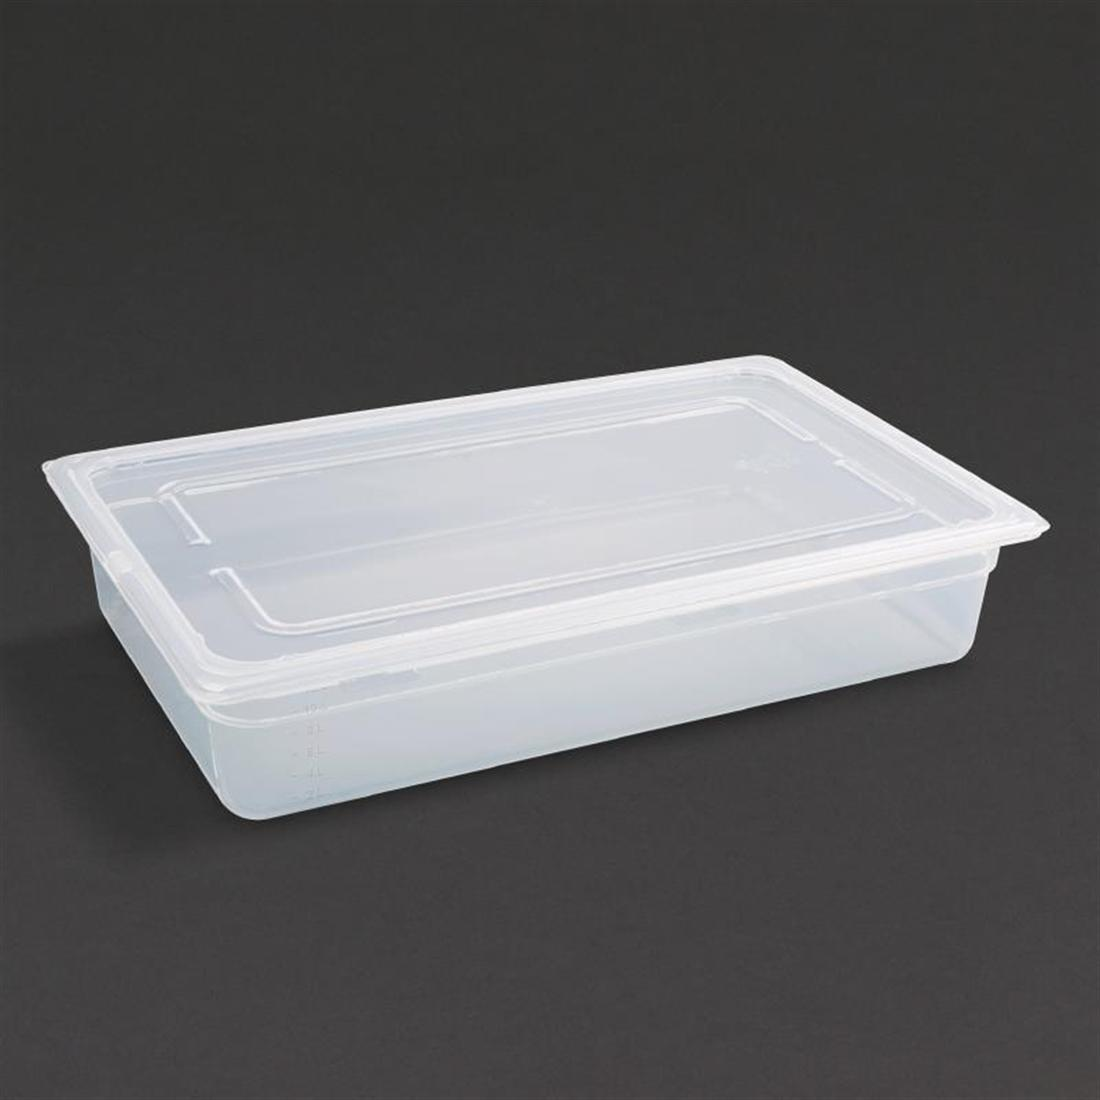 Vogue Polypropylene 1/1 Gastronorm Container with Lid 100mm - Pack of 2 - GJ511